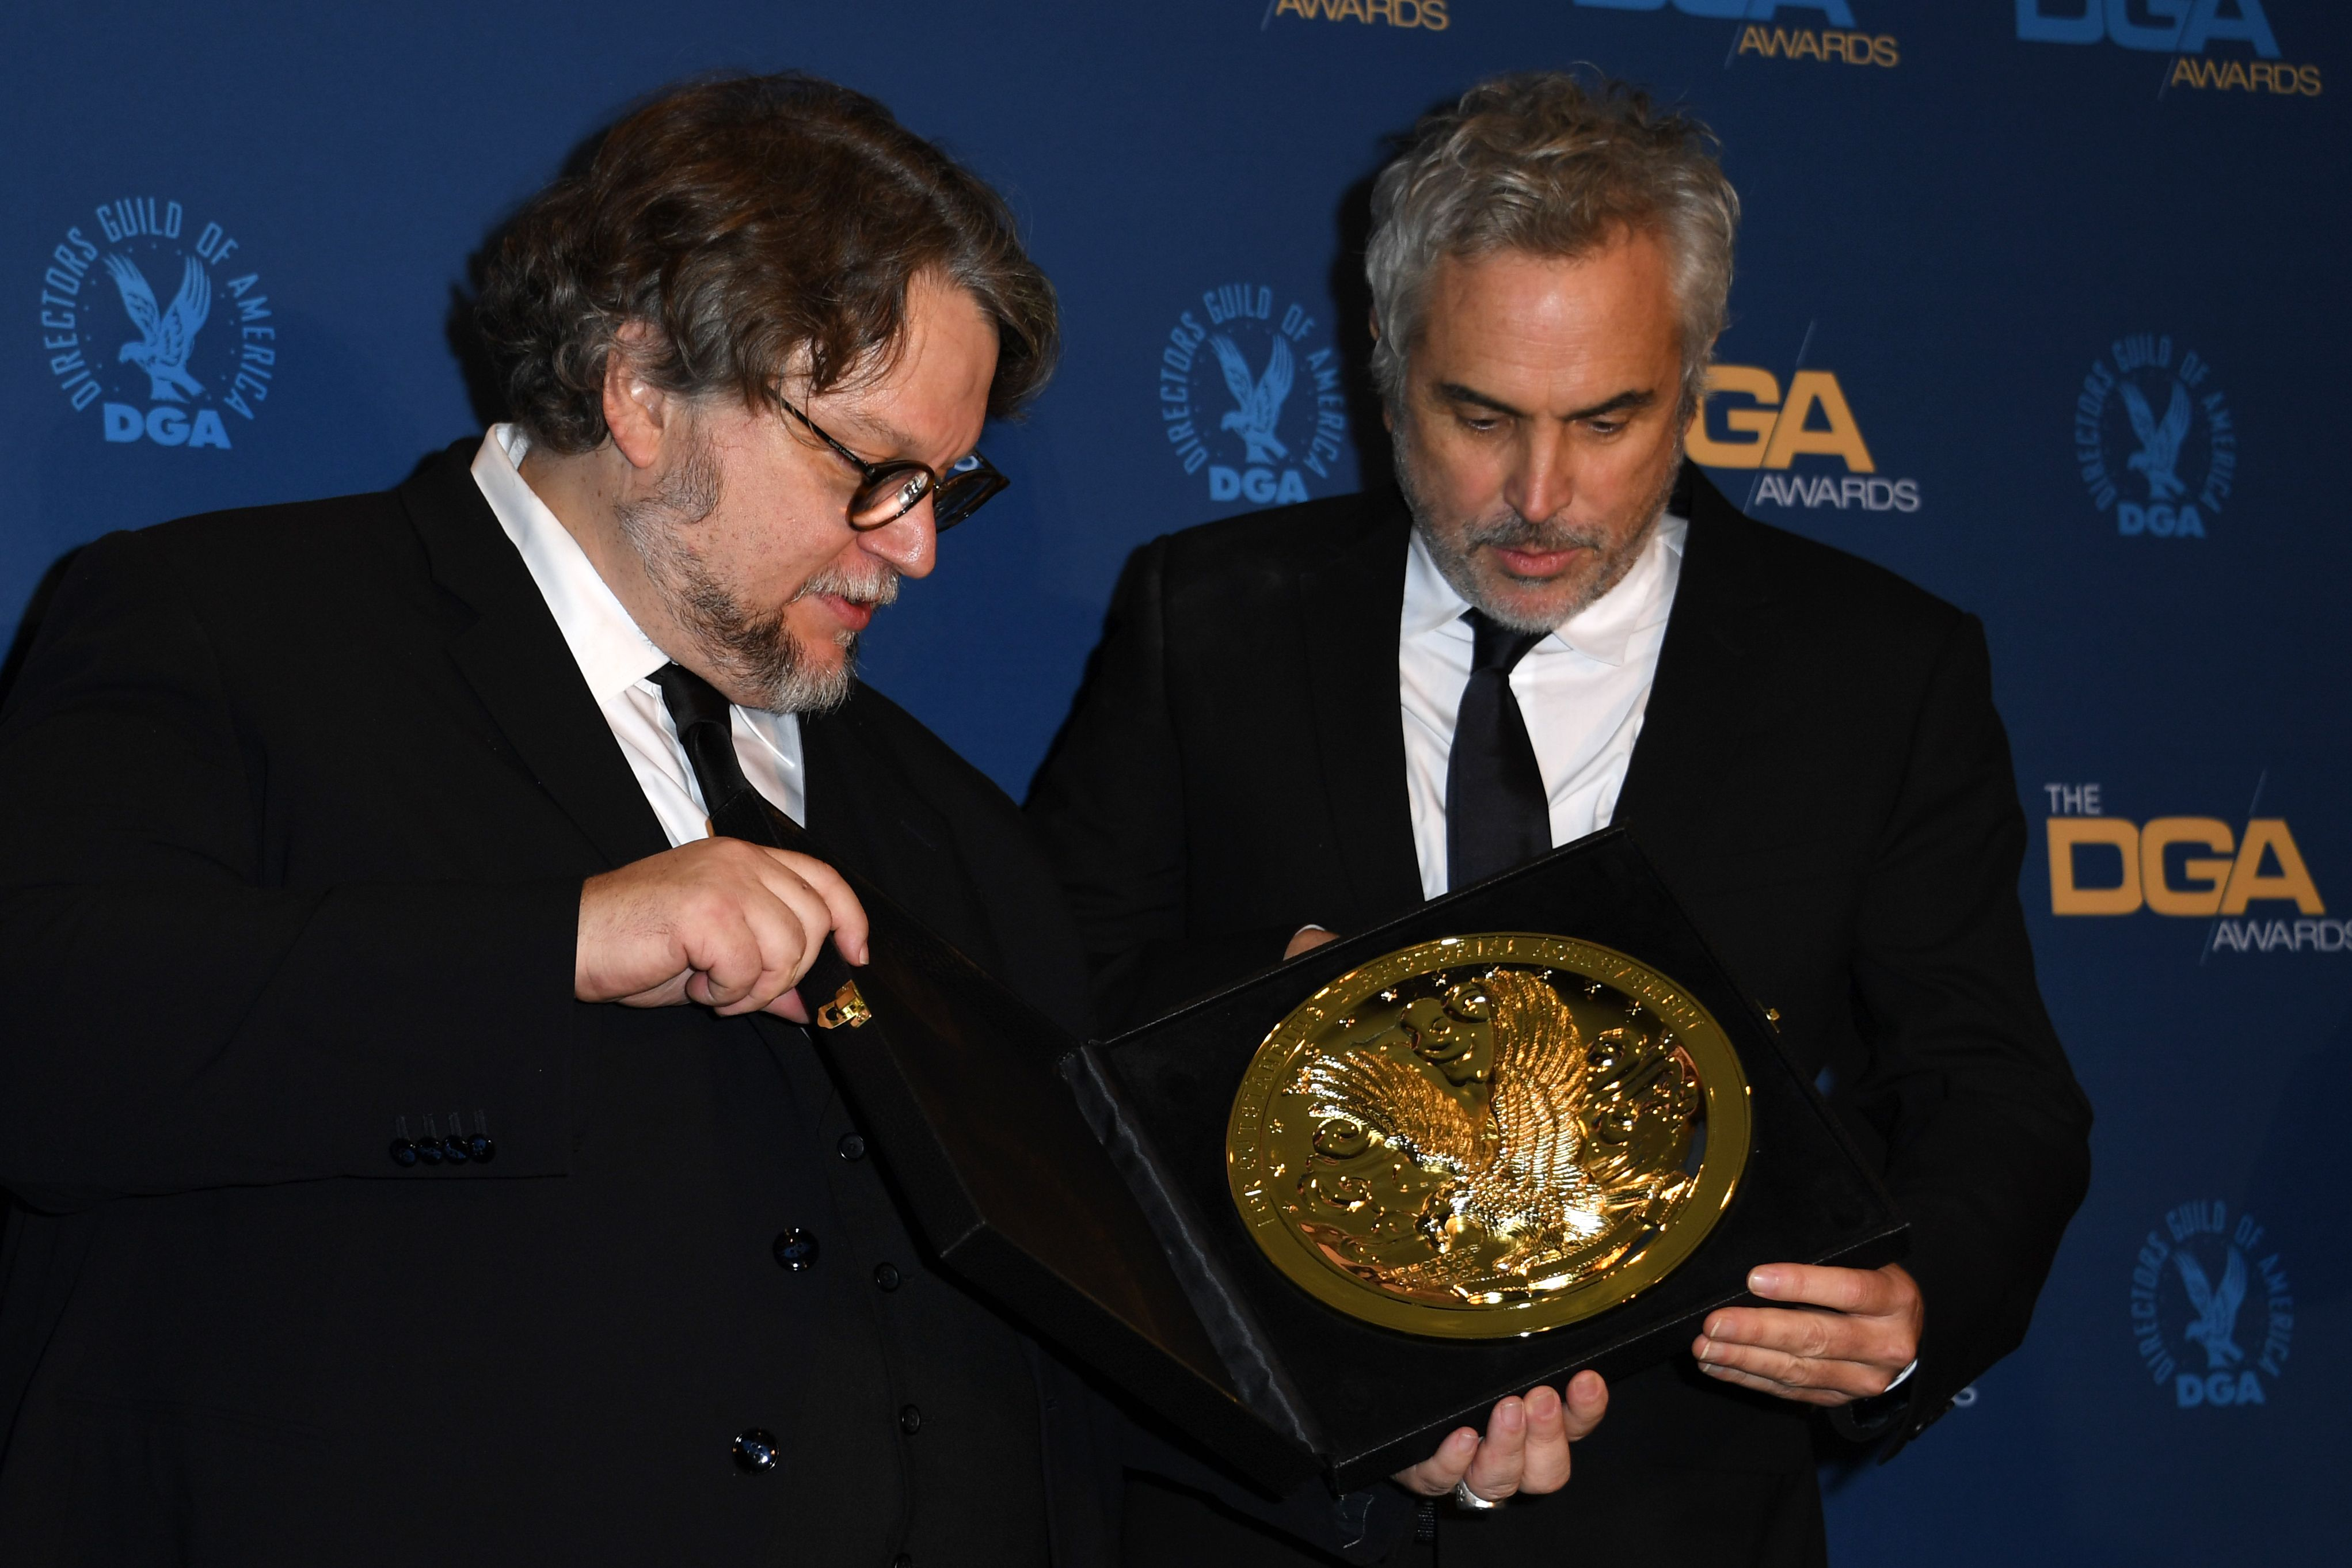 """Director Alfonso Cuaron (R) poses next to director Guillermo Del Toro with the award for Outstanding Directorial Achievement in Feature Film for """"Roma"""" in the press room during the 71st Annual Directors Guild Of America (DGA) Awards at the Ray Dolby Ballroom in Hollywood on February 2, 2019. (Photo by Valerie MACON / AFP)"""